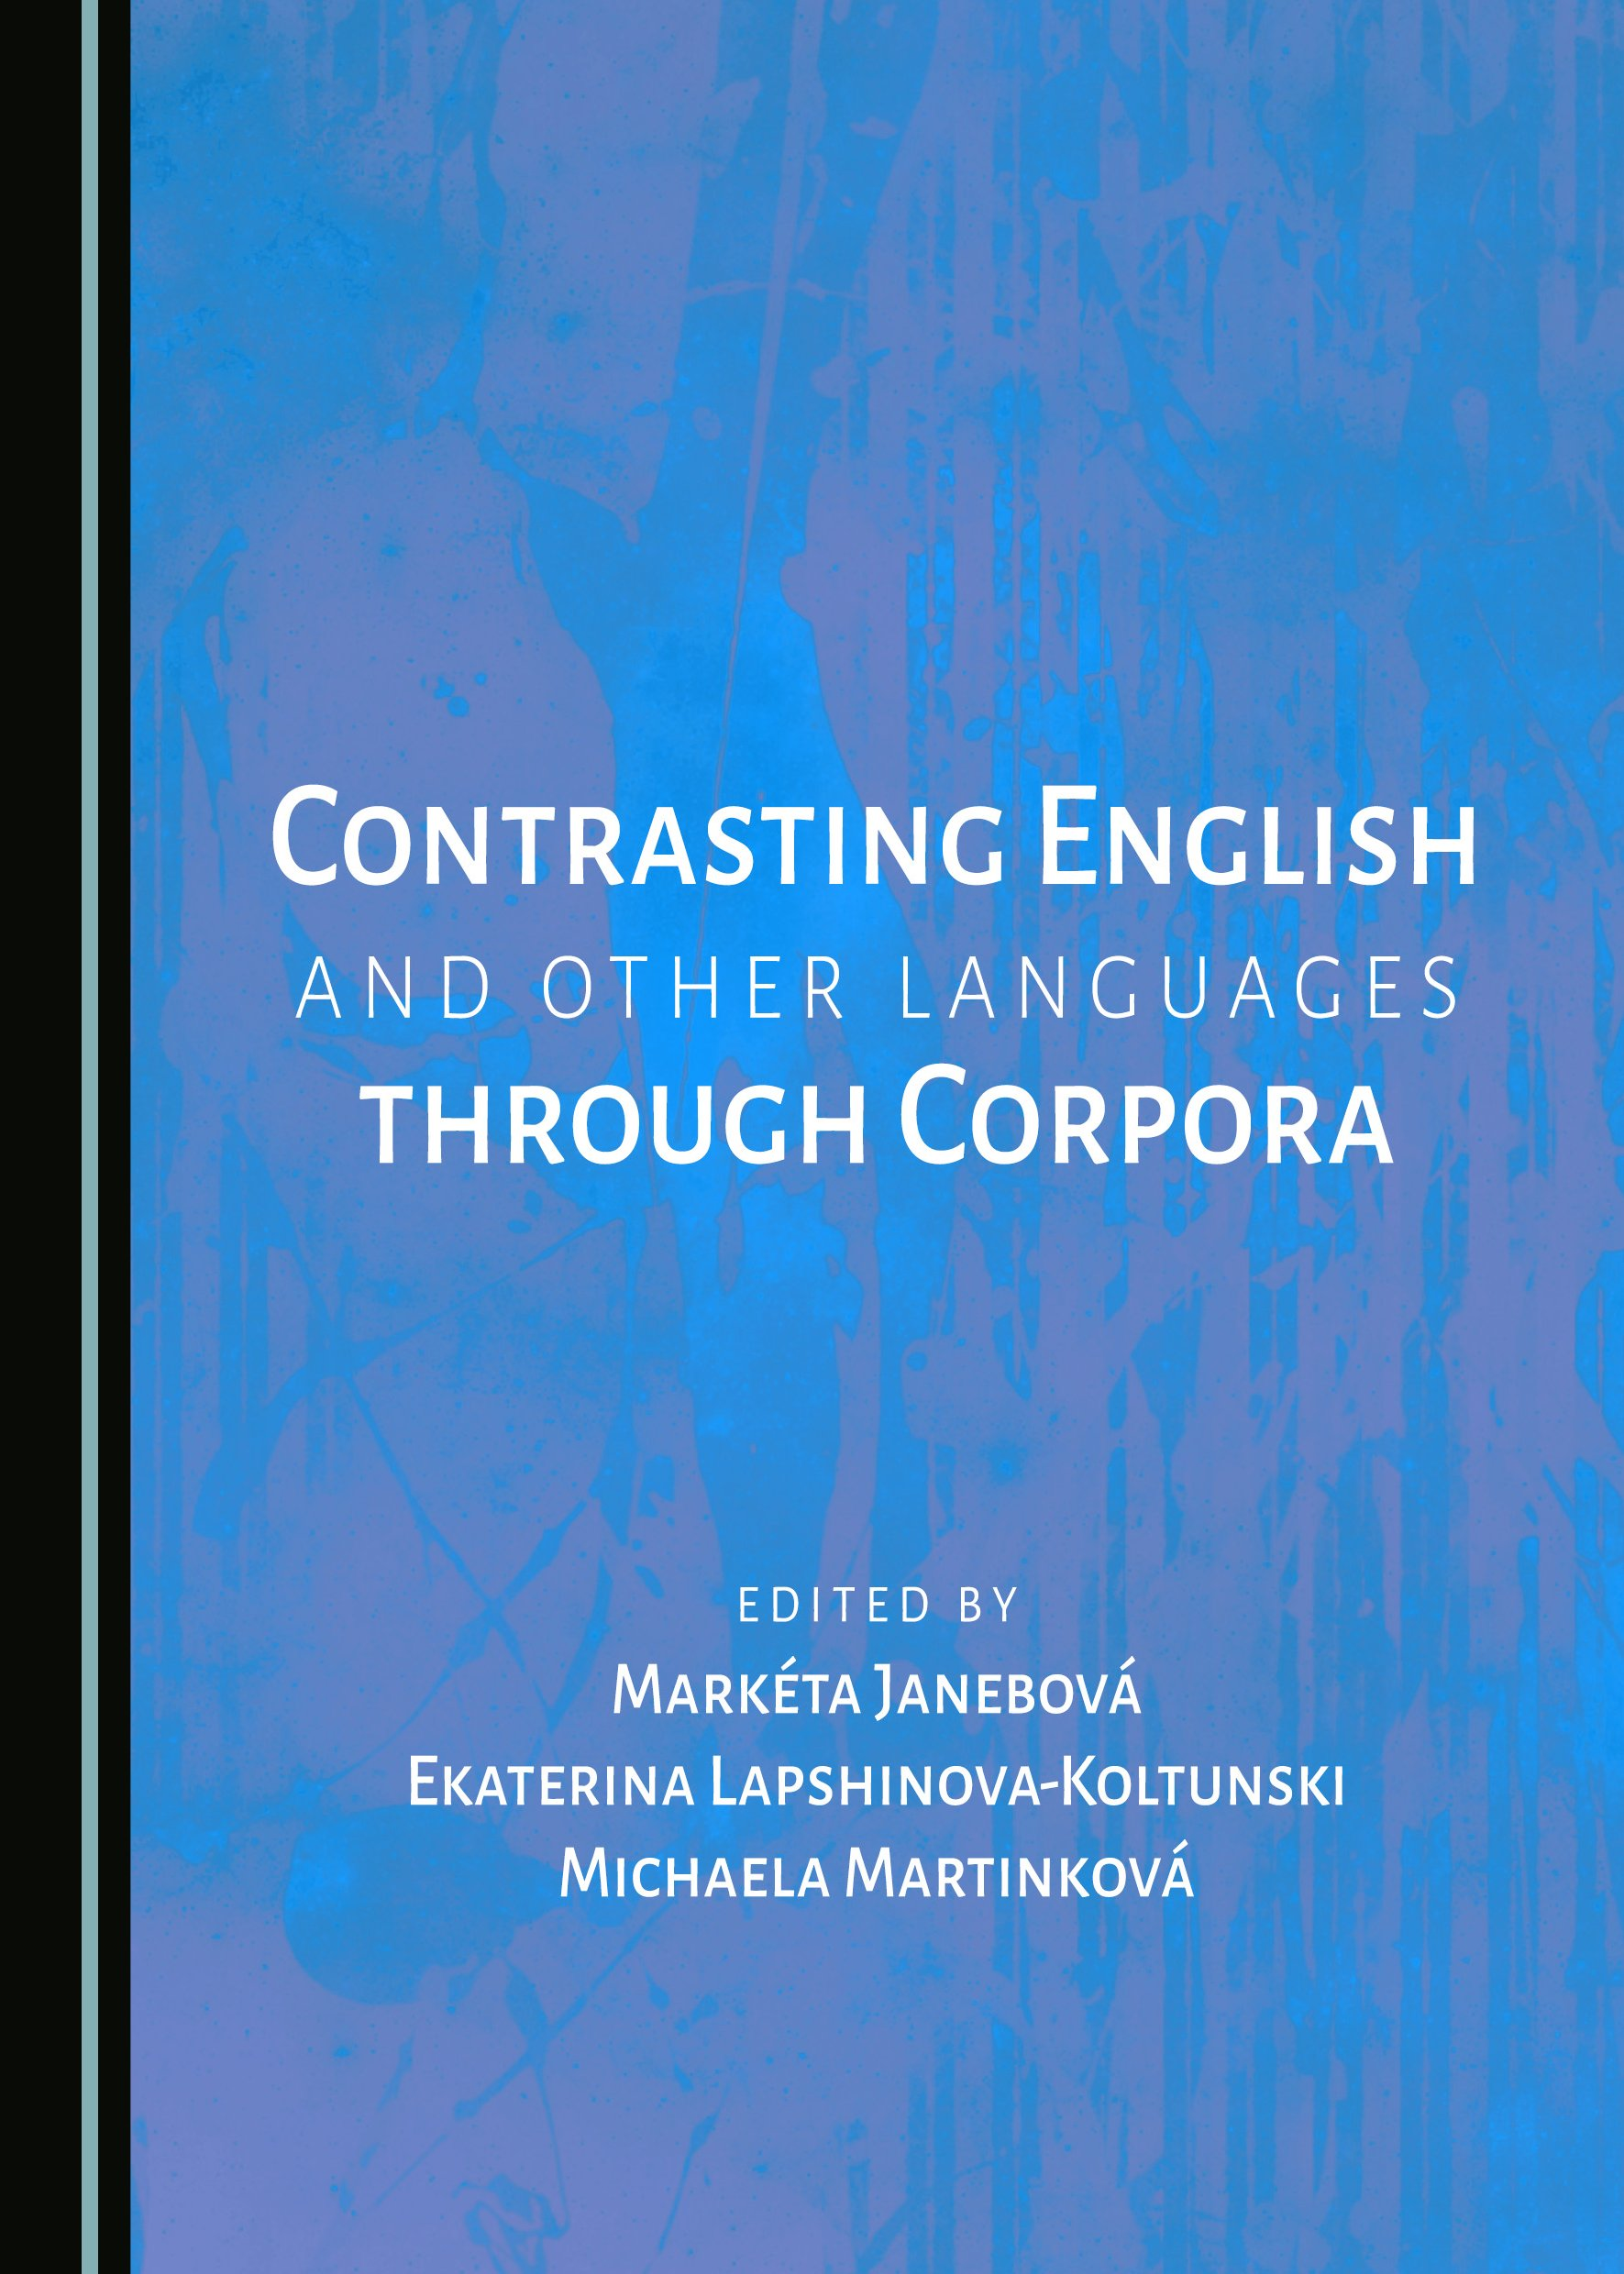 Contrasting English and Other Languages through Corpora